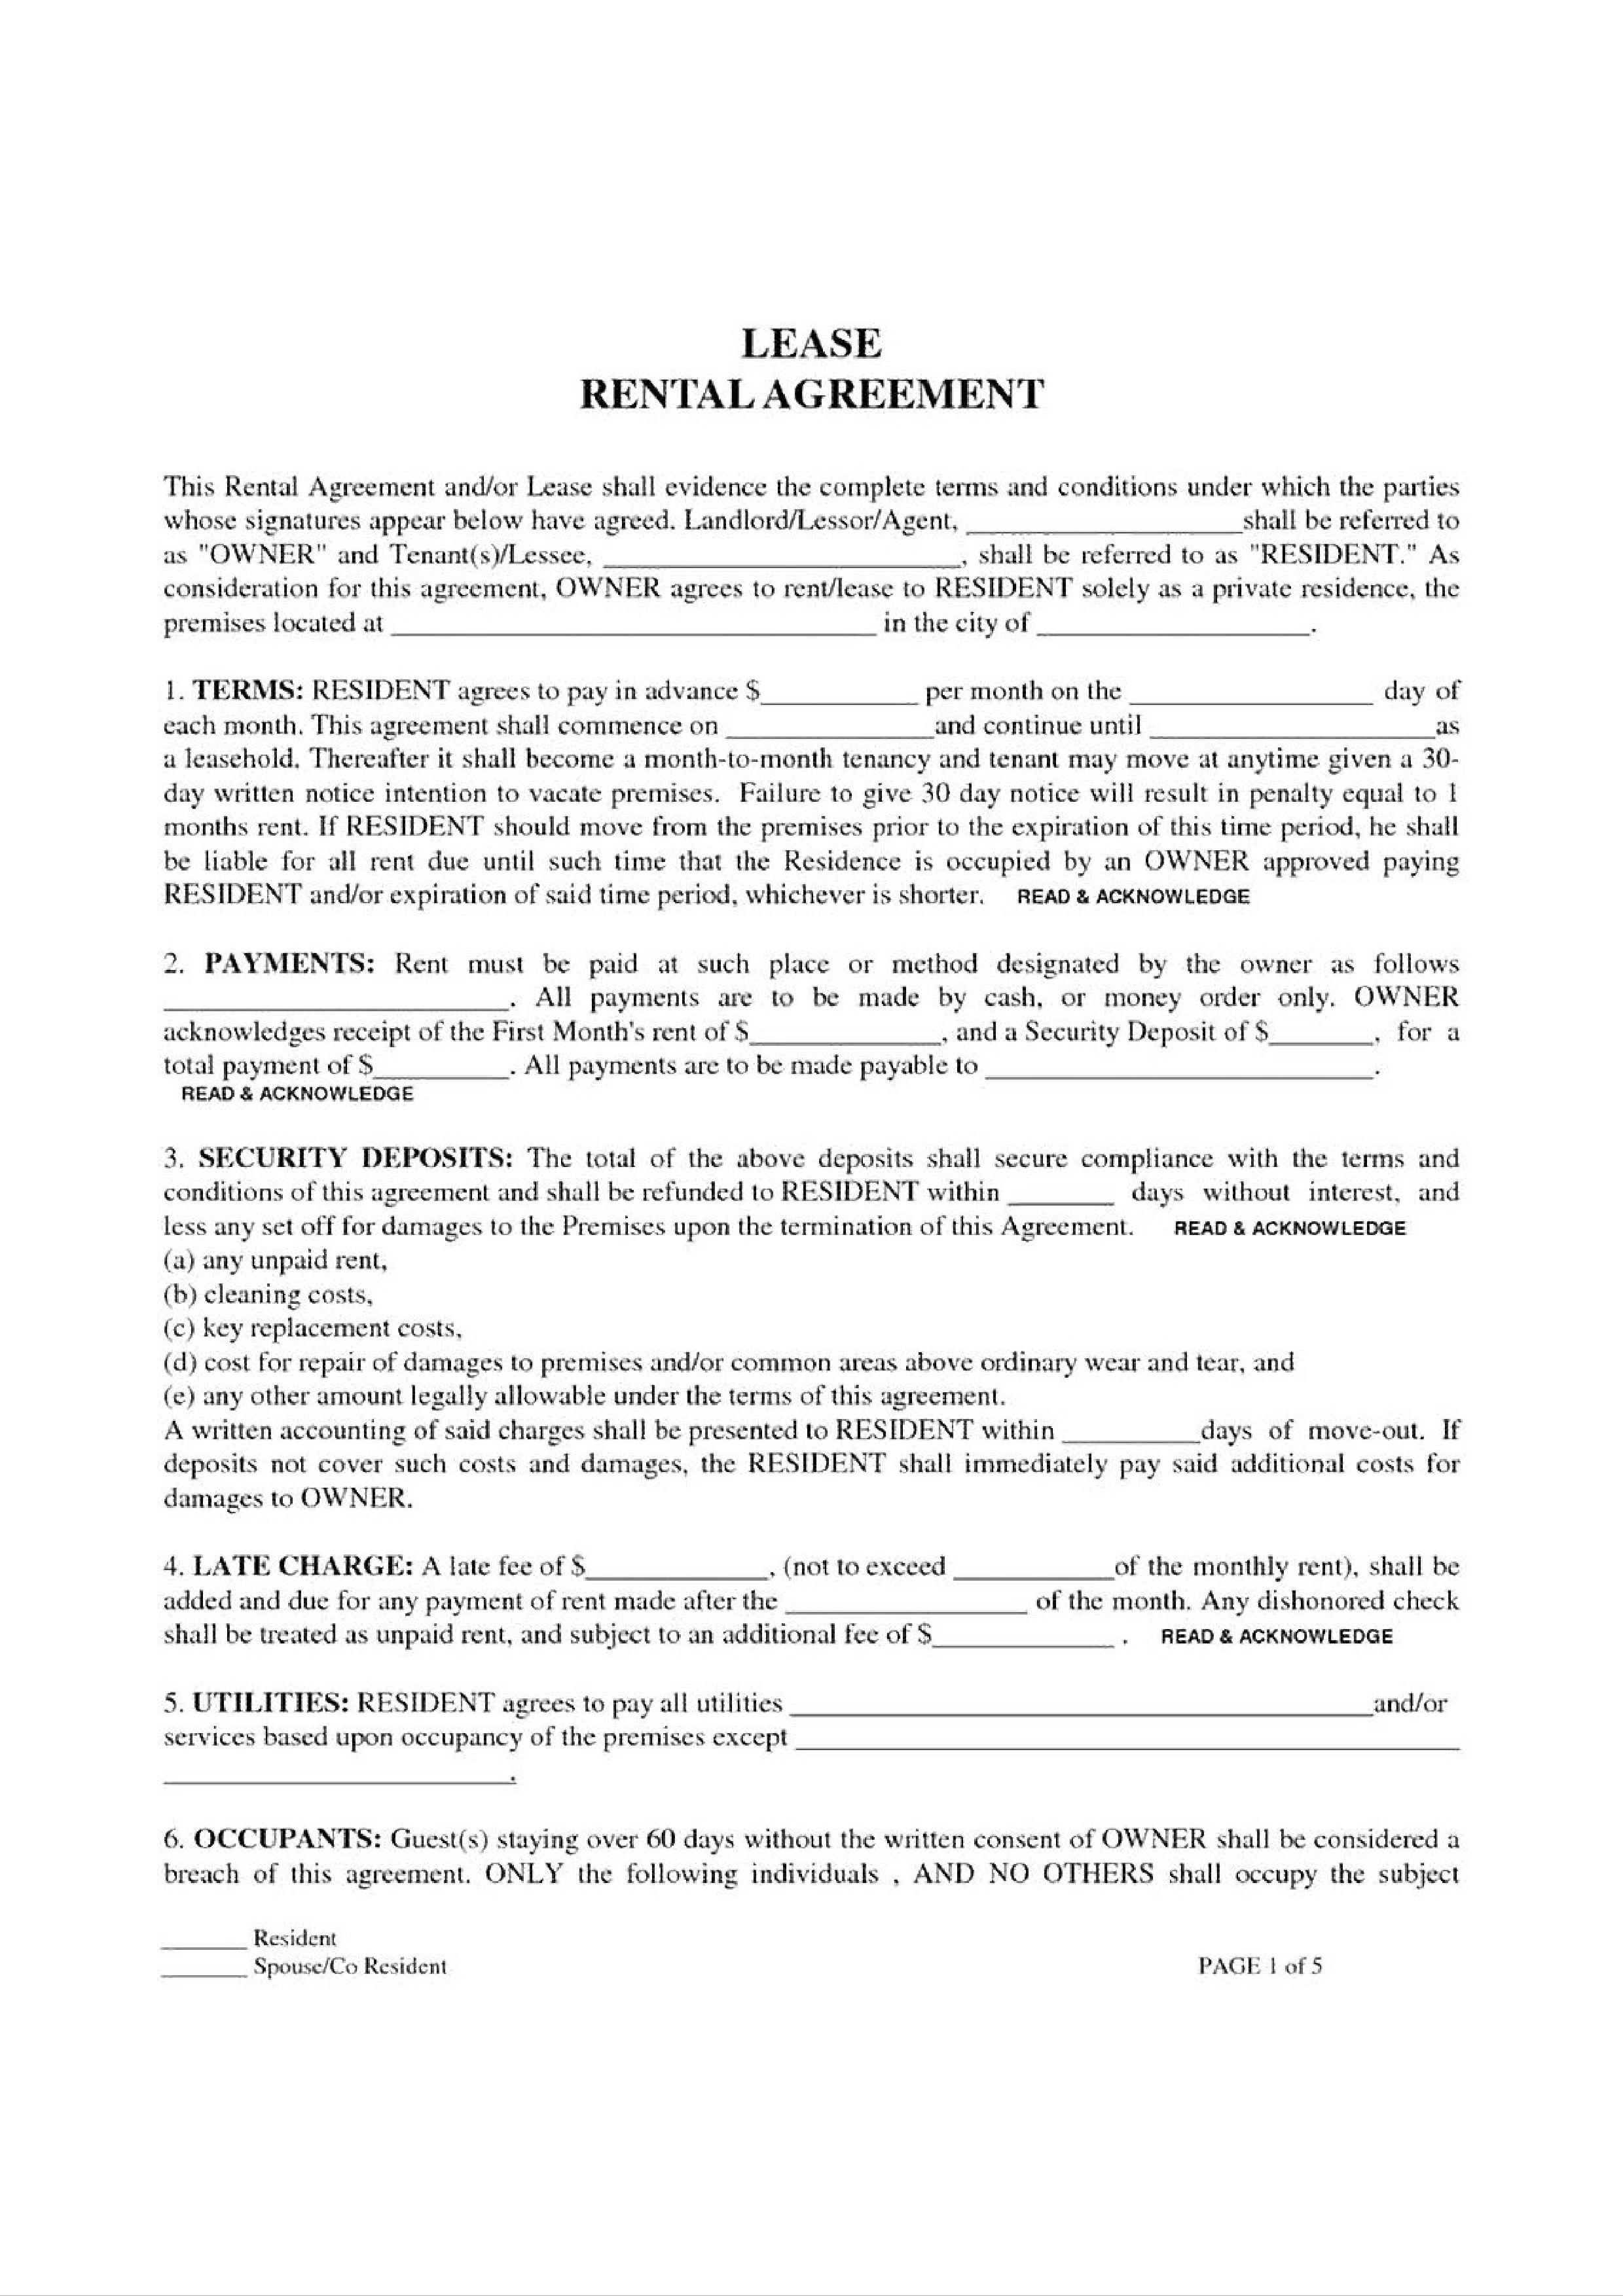 Apartment Lease Rental Property How To Create An Apartment Lease Rental Property Download This Apartment Le Apartment Lease Rental Property Being A Landlord